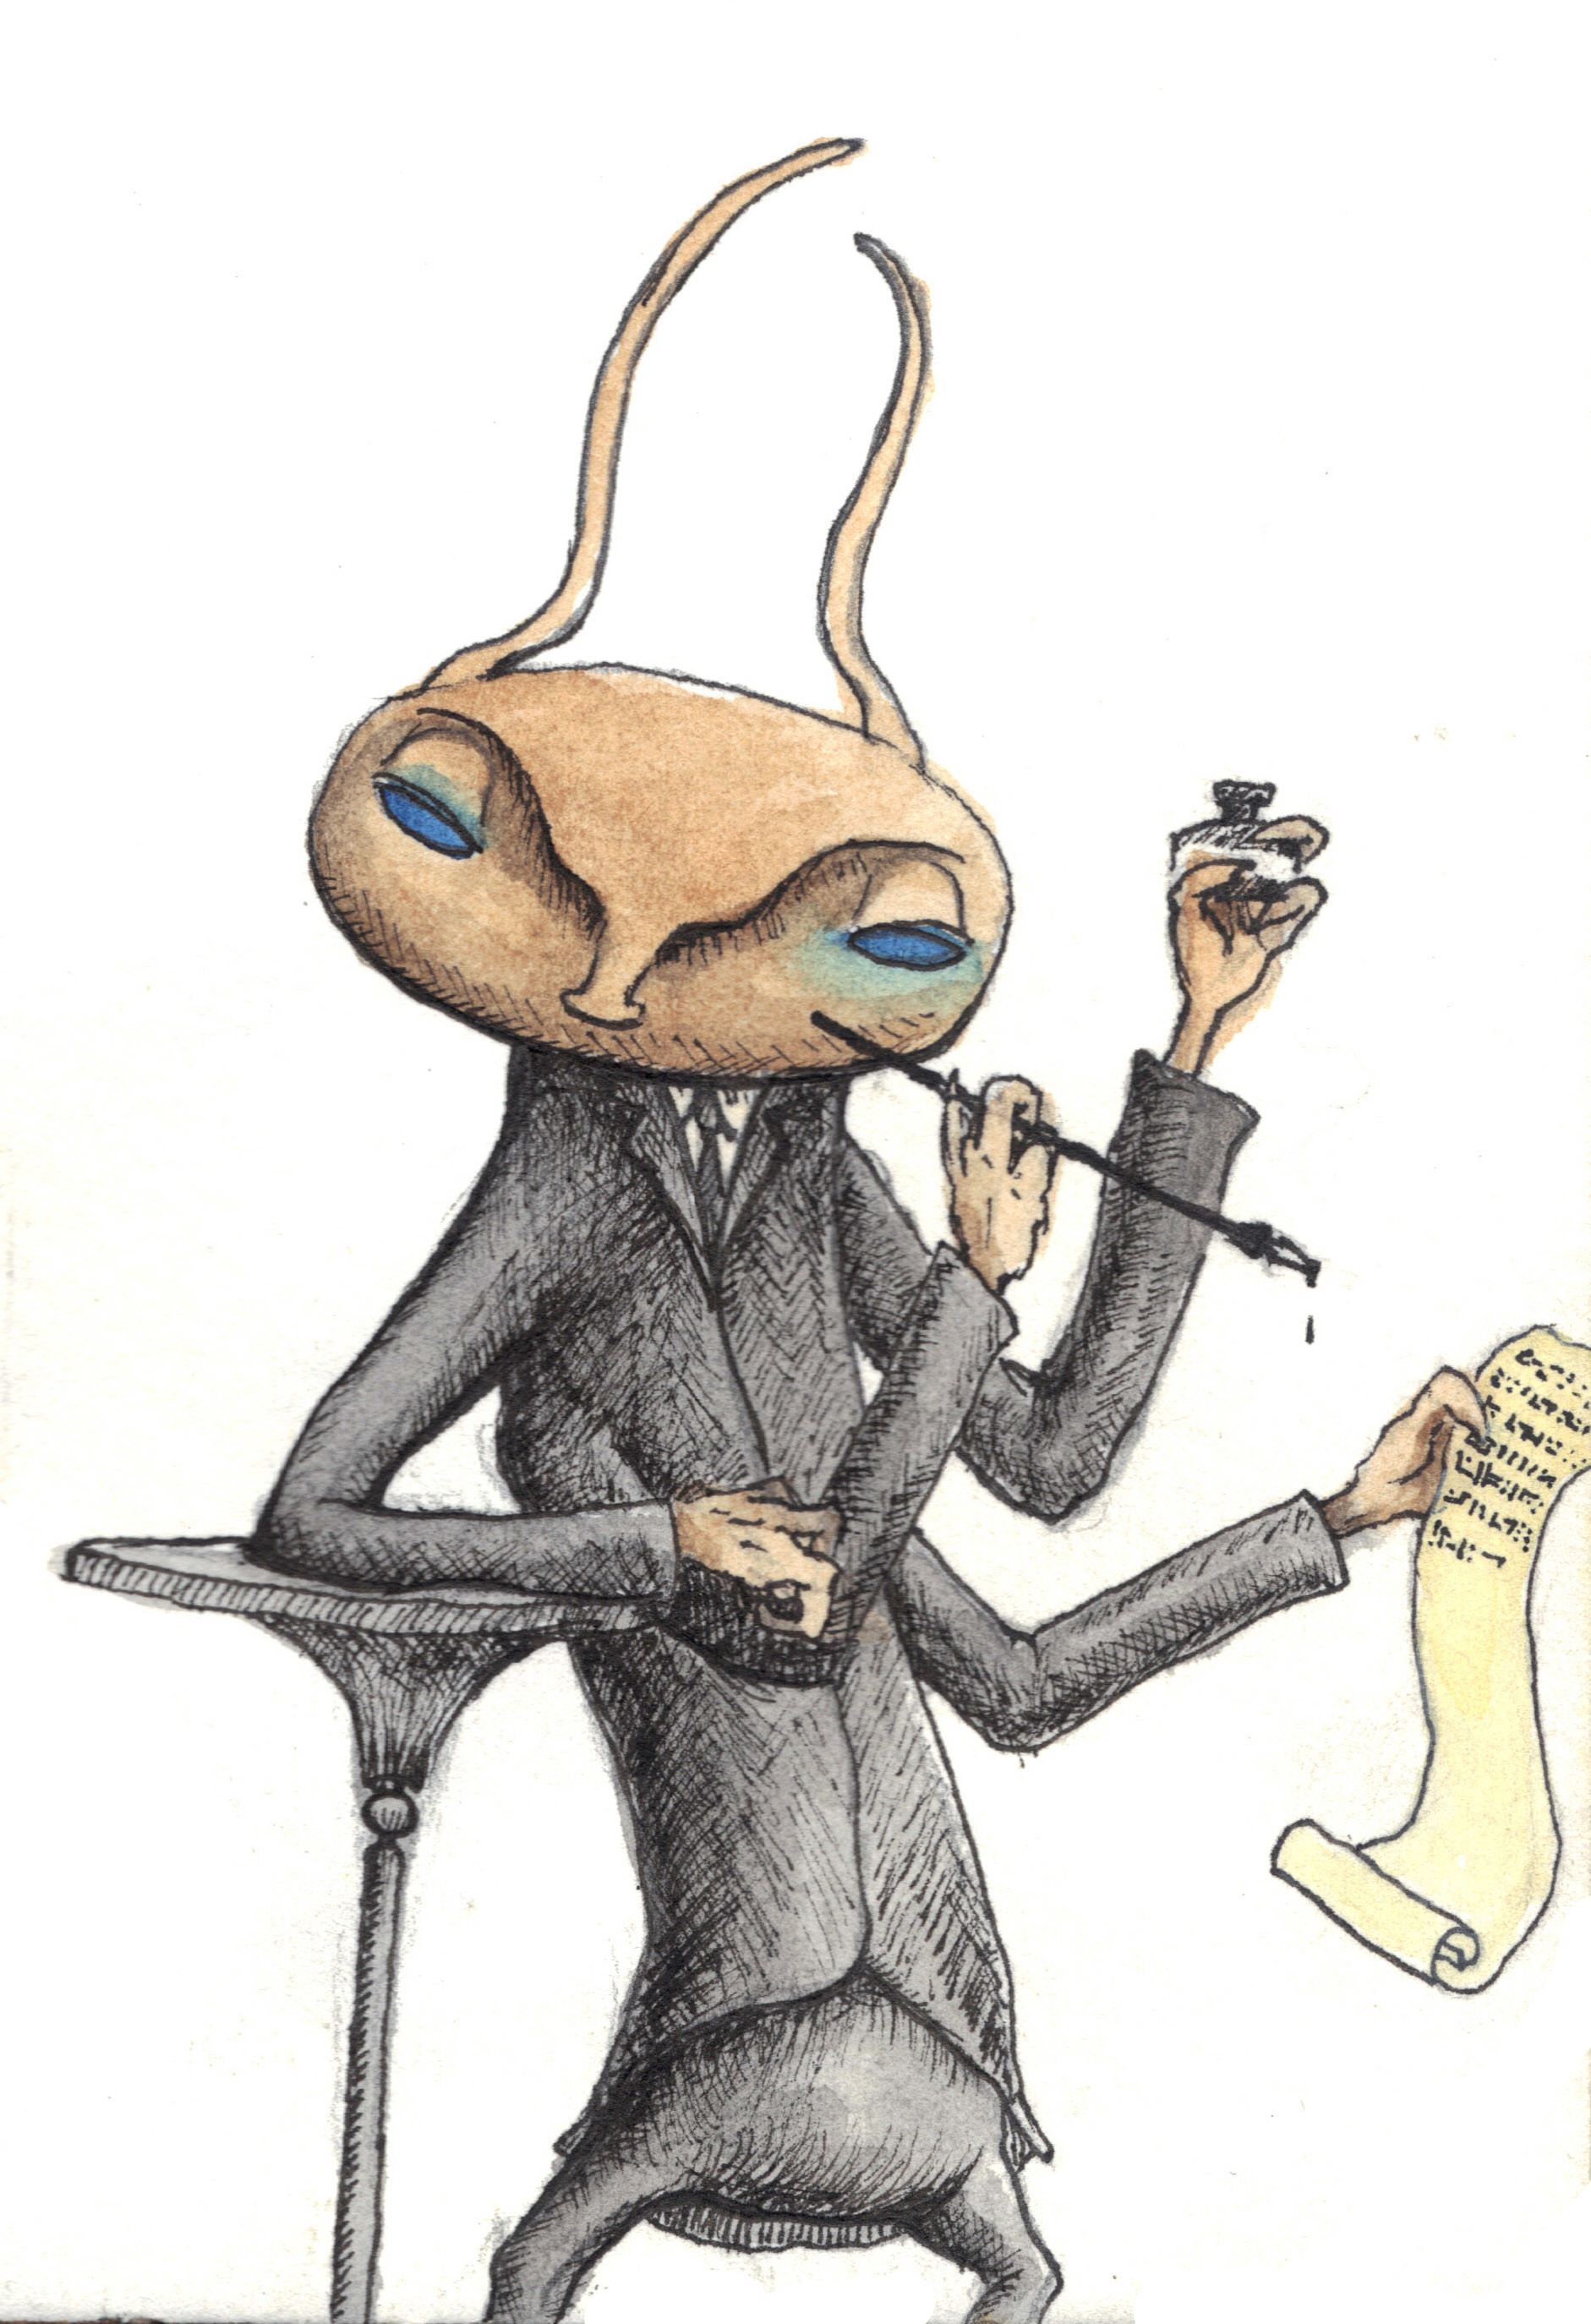 Patrick weck insect scribe pen drawing and watercolor